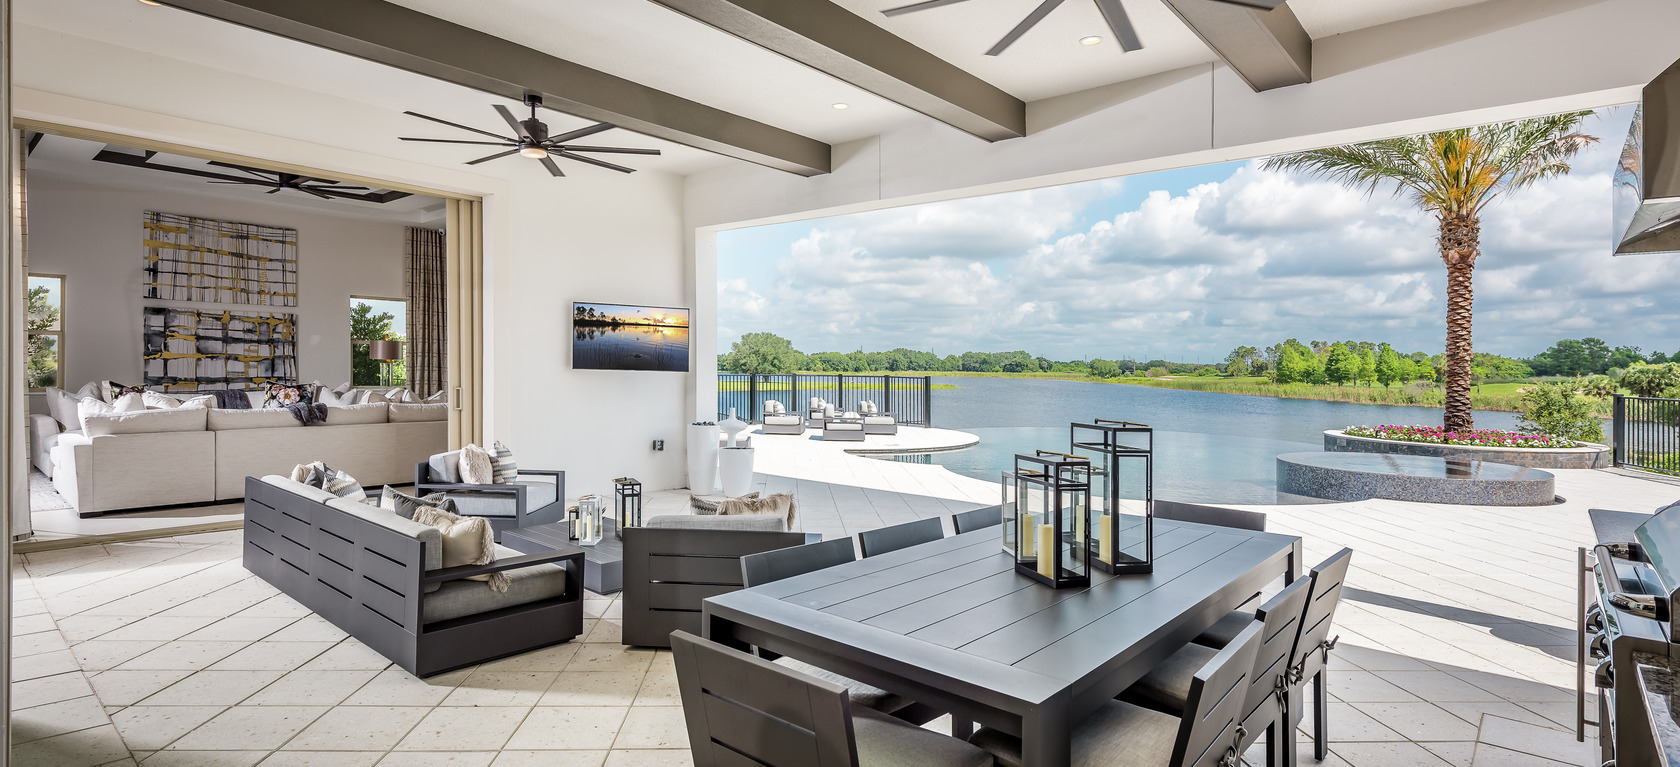 Indoor Outdoor Living Space Ideas to Inspire Your Home Design on Enclosed Outdoor Living Spaces  id=77082